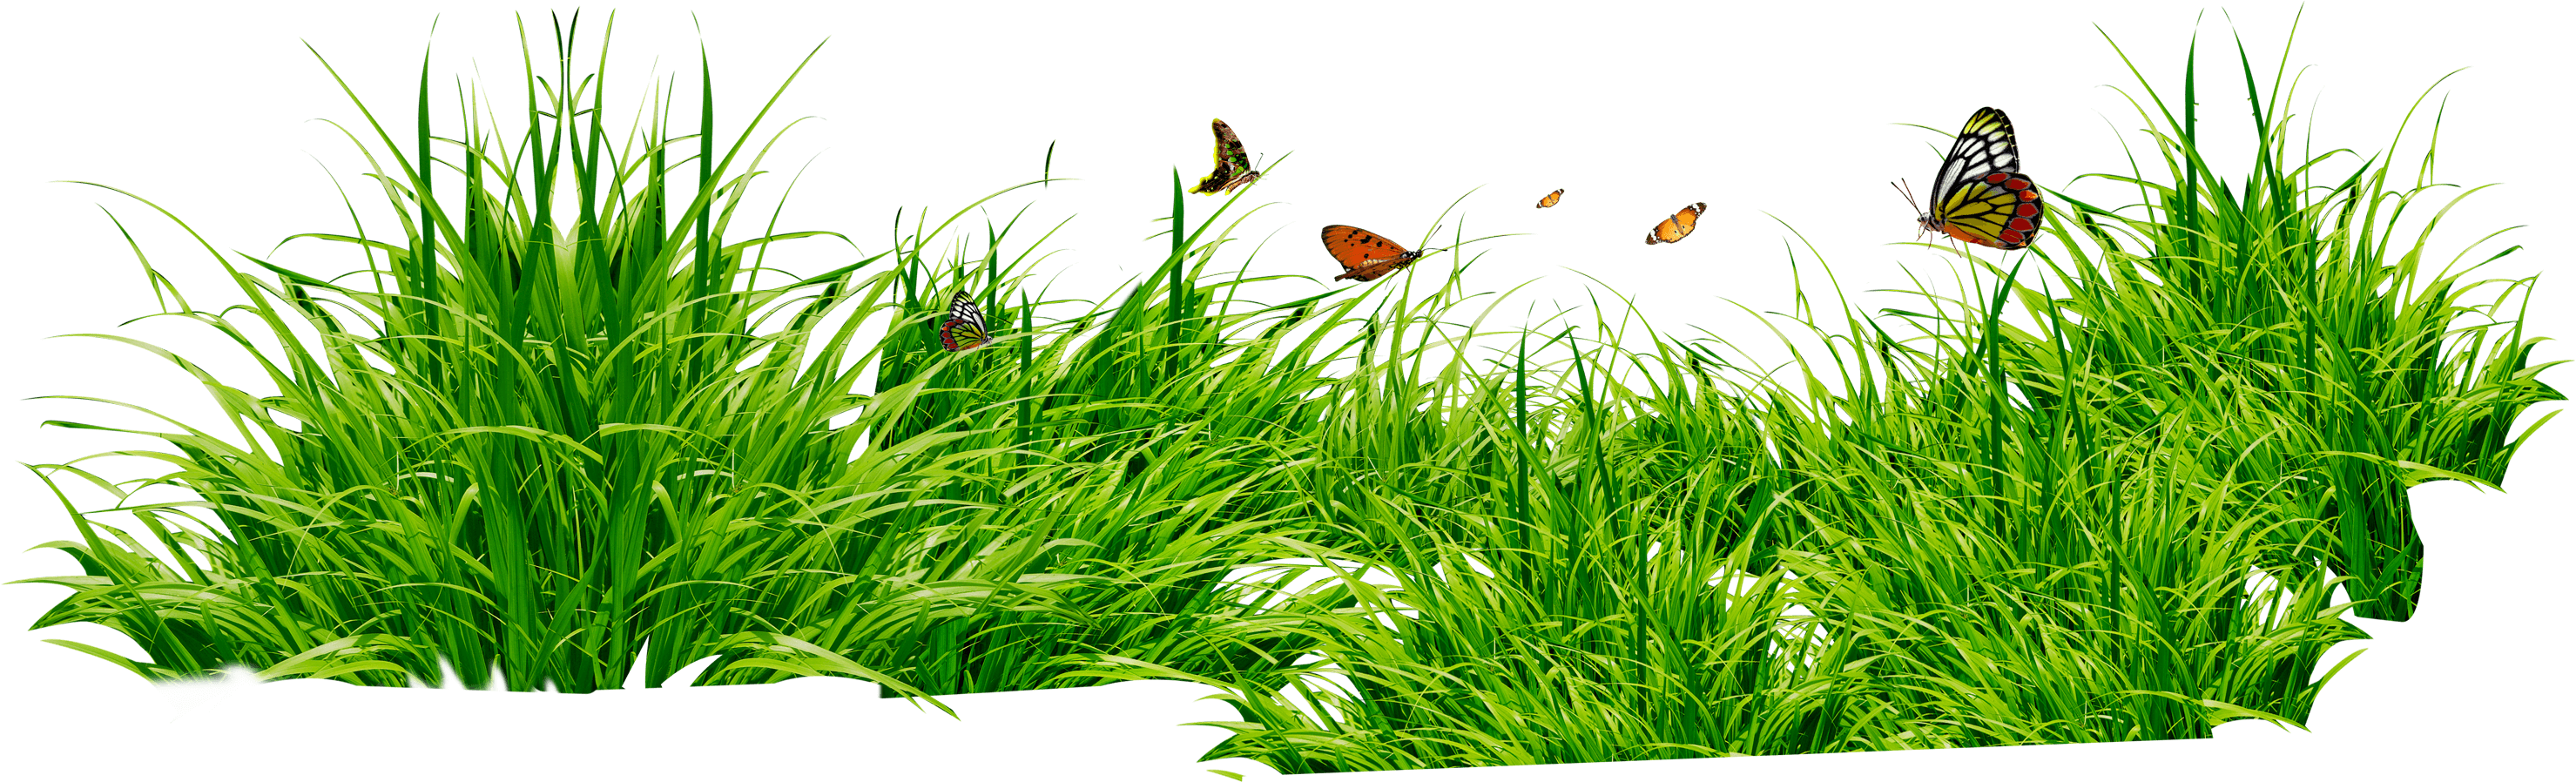 svg free library Patch free on dumielauxepices. Lawn clipart wild grass.